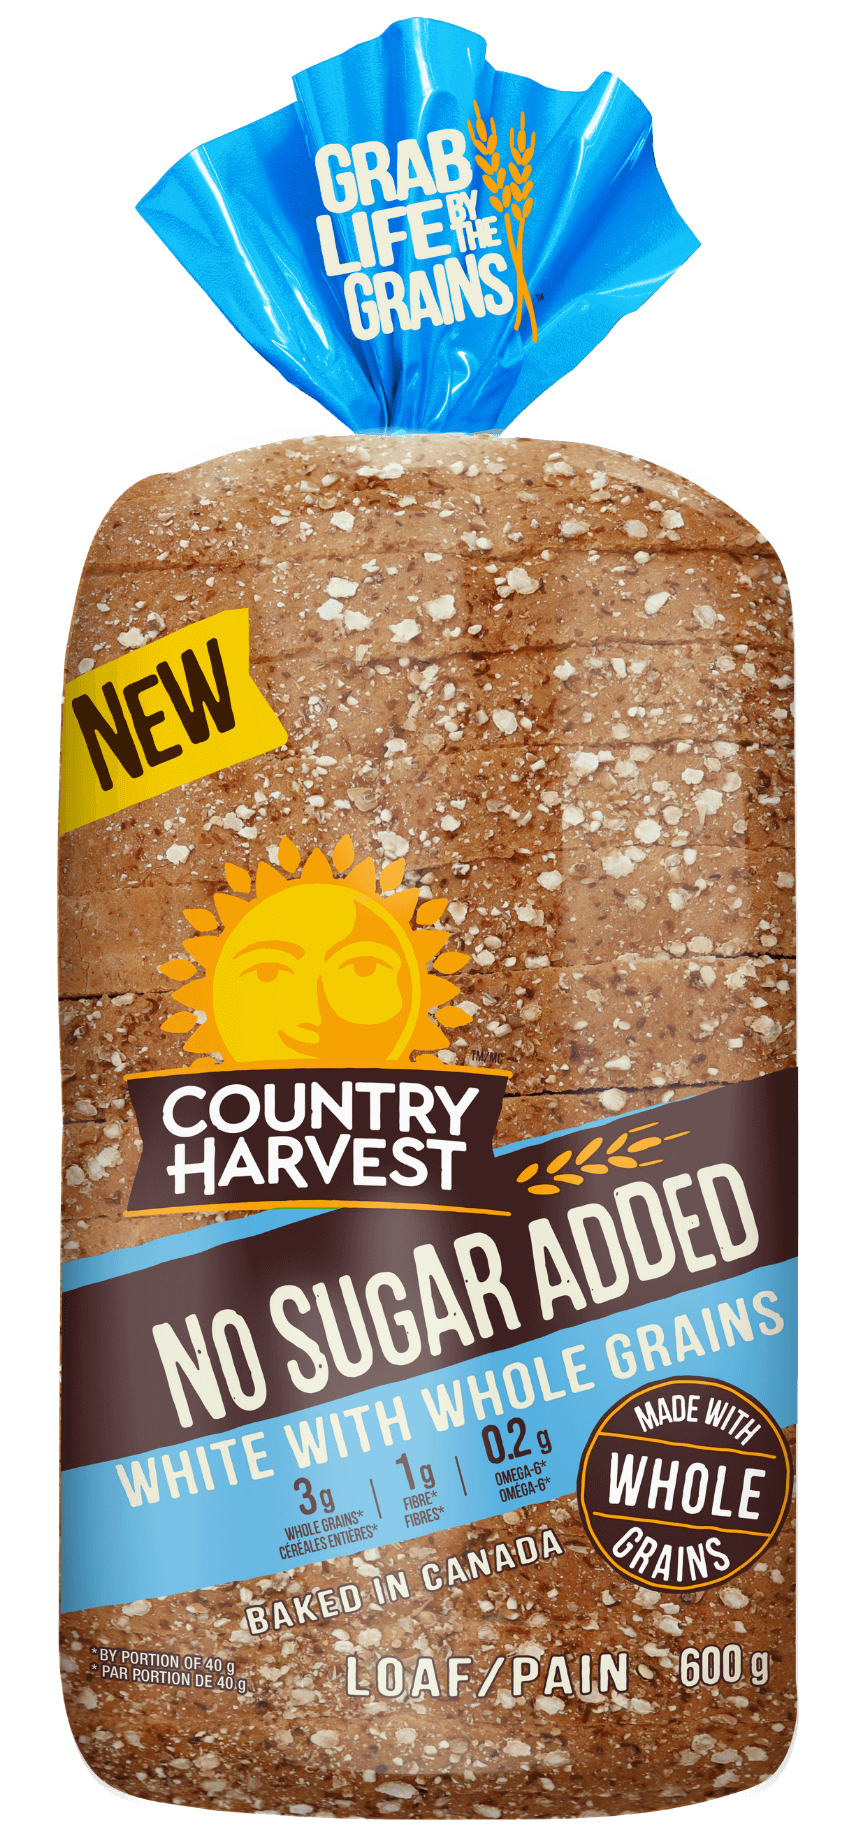 Country-Harvest-NO-Sugar-Added-White-With-Whole-Grains